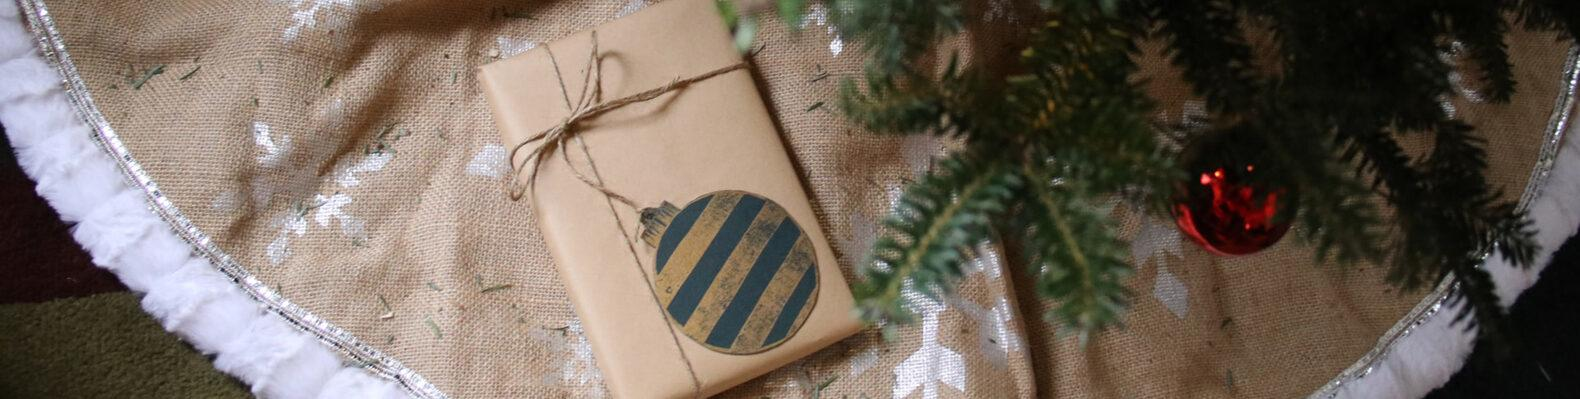 gift wrapped in brown paper placed under a Christmas tree